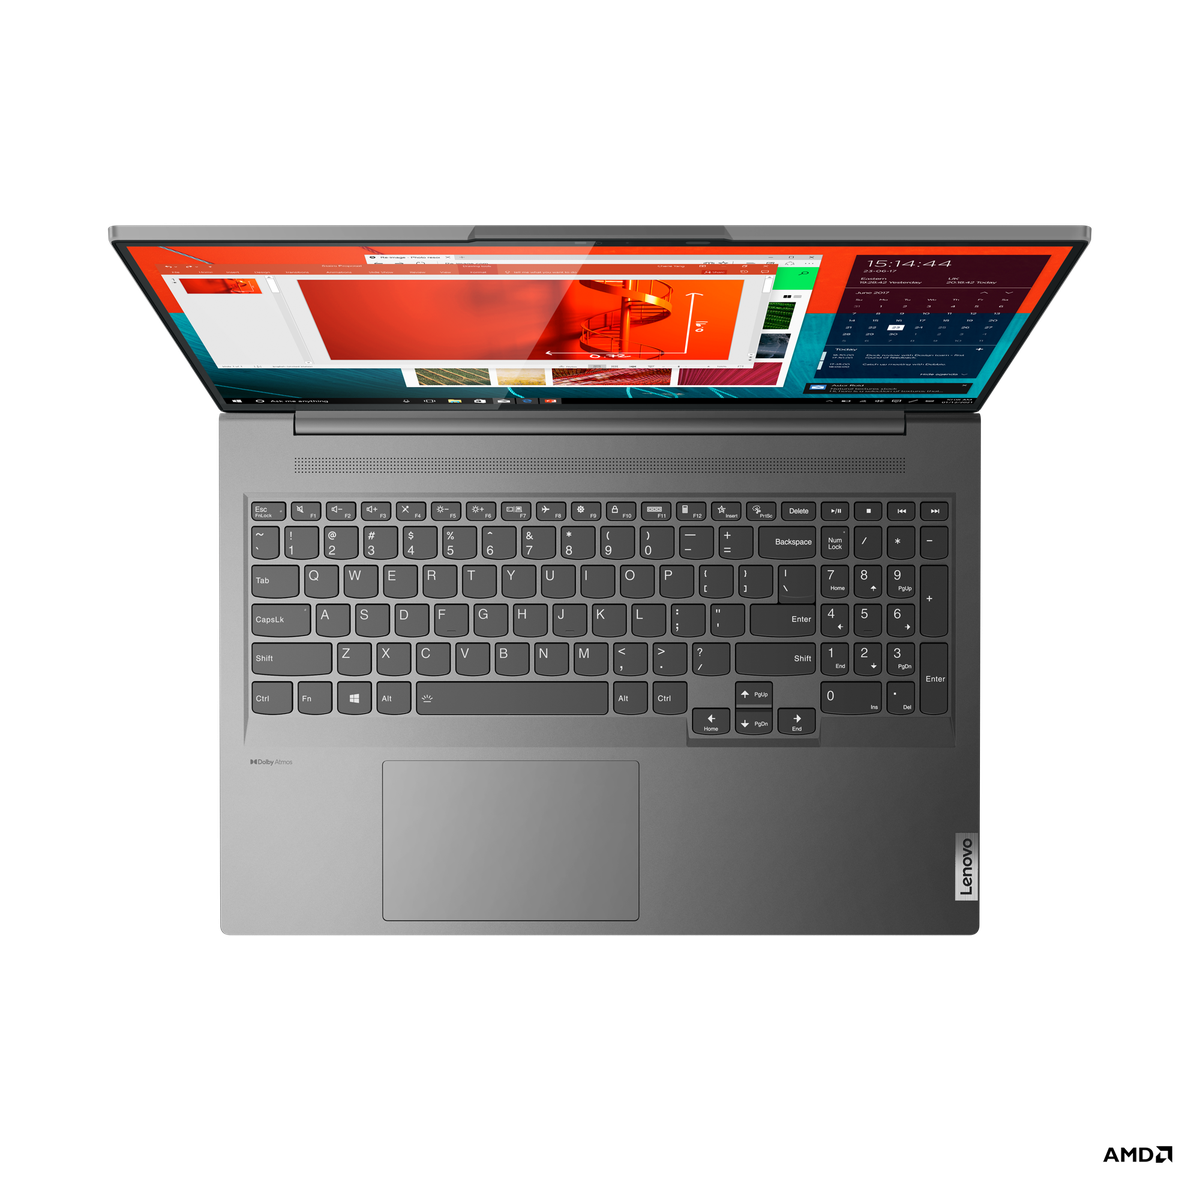 The keyboard of the Lenovo Yoga Slim 7 Pro seen from above on a white background. The screen displays a few windowed apps on an orange background.